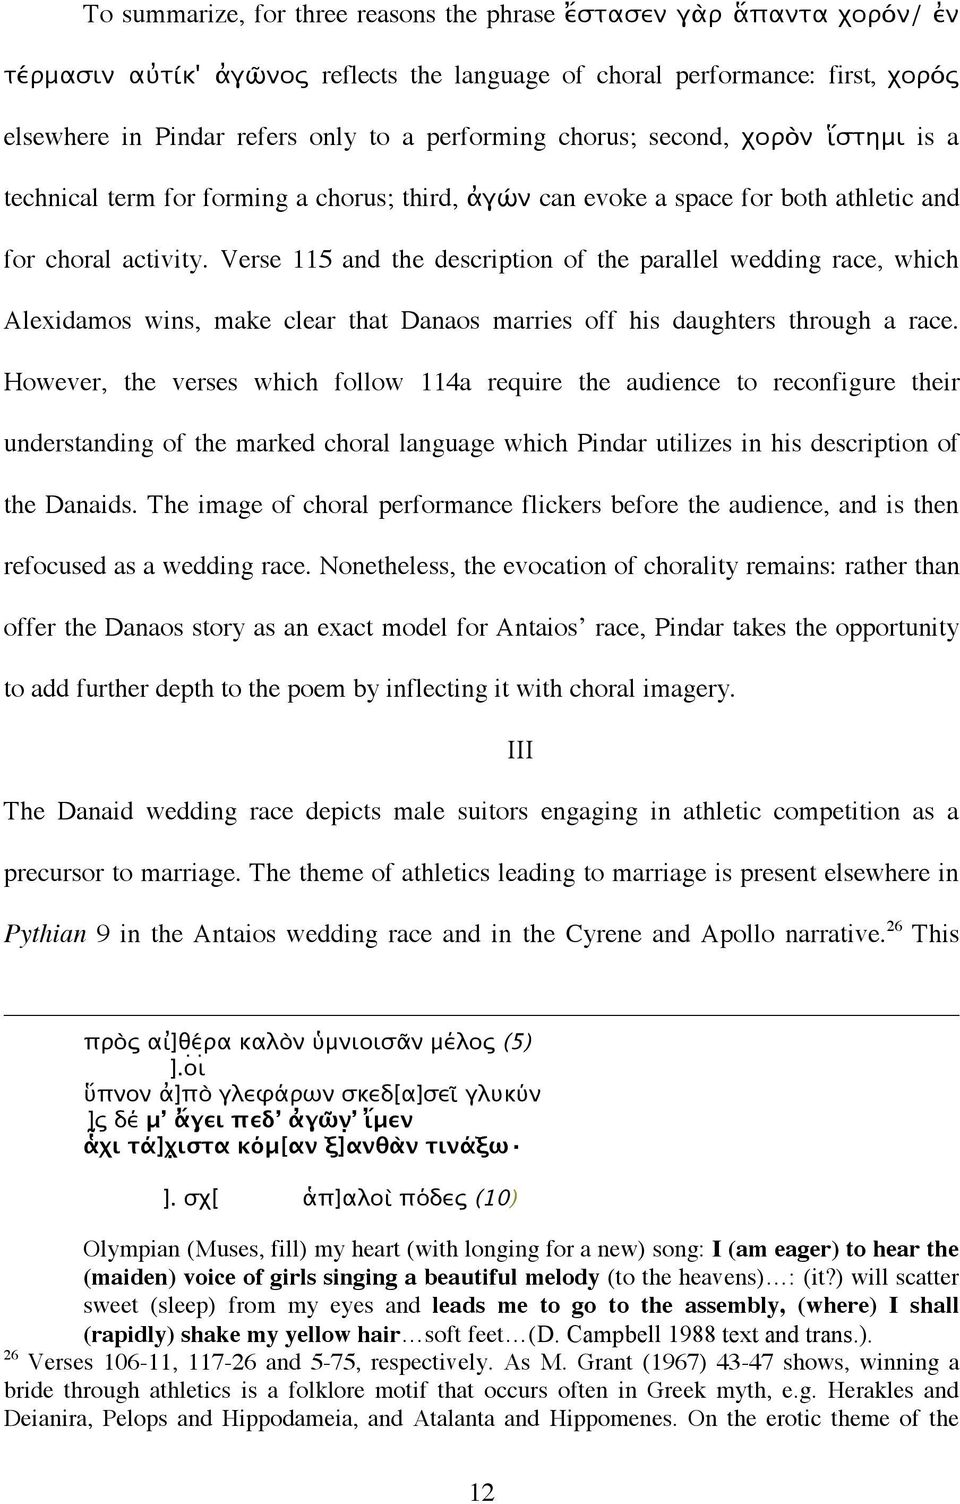 Verse 115 and the description of the parallel wedding race, which Alexidamos wins, make clear that Danaos marries off his daughters through a race.